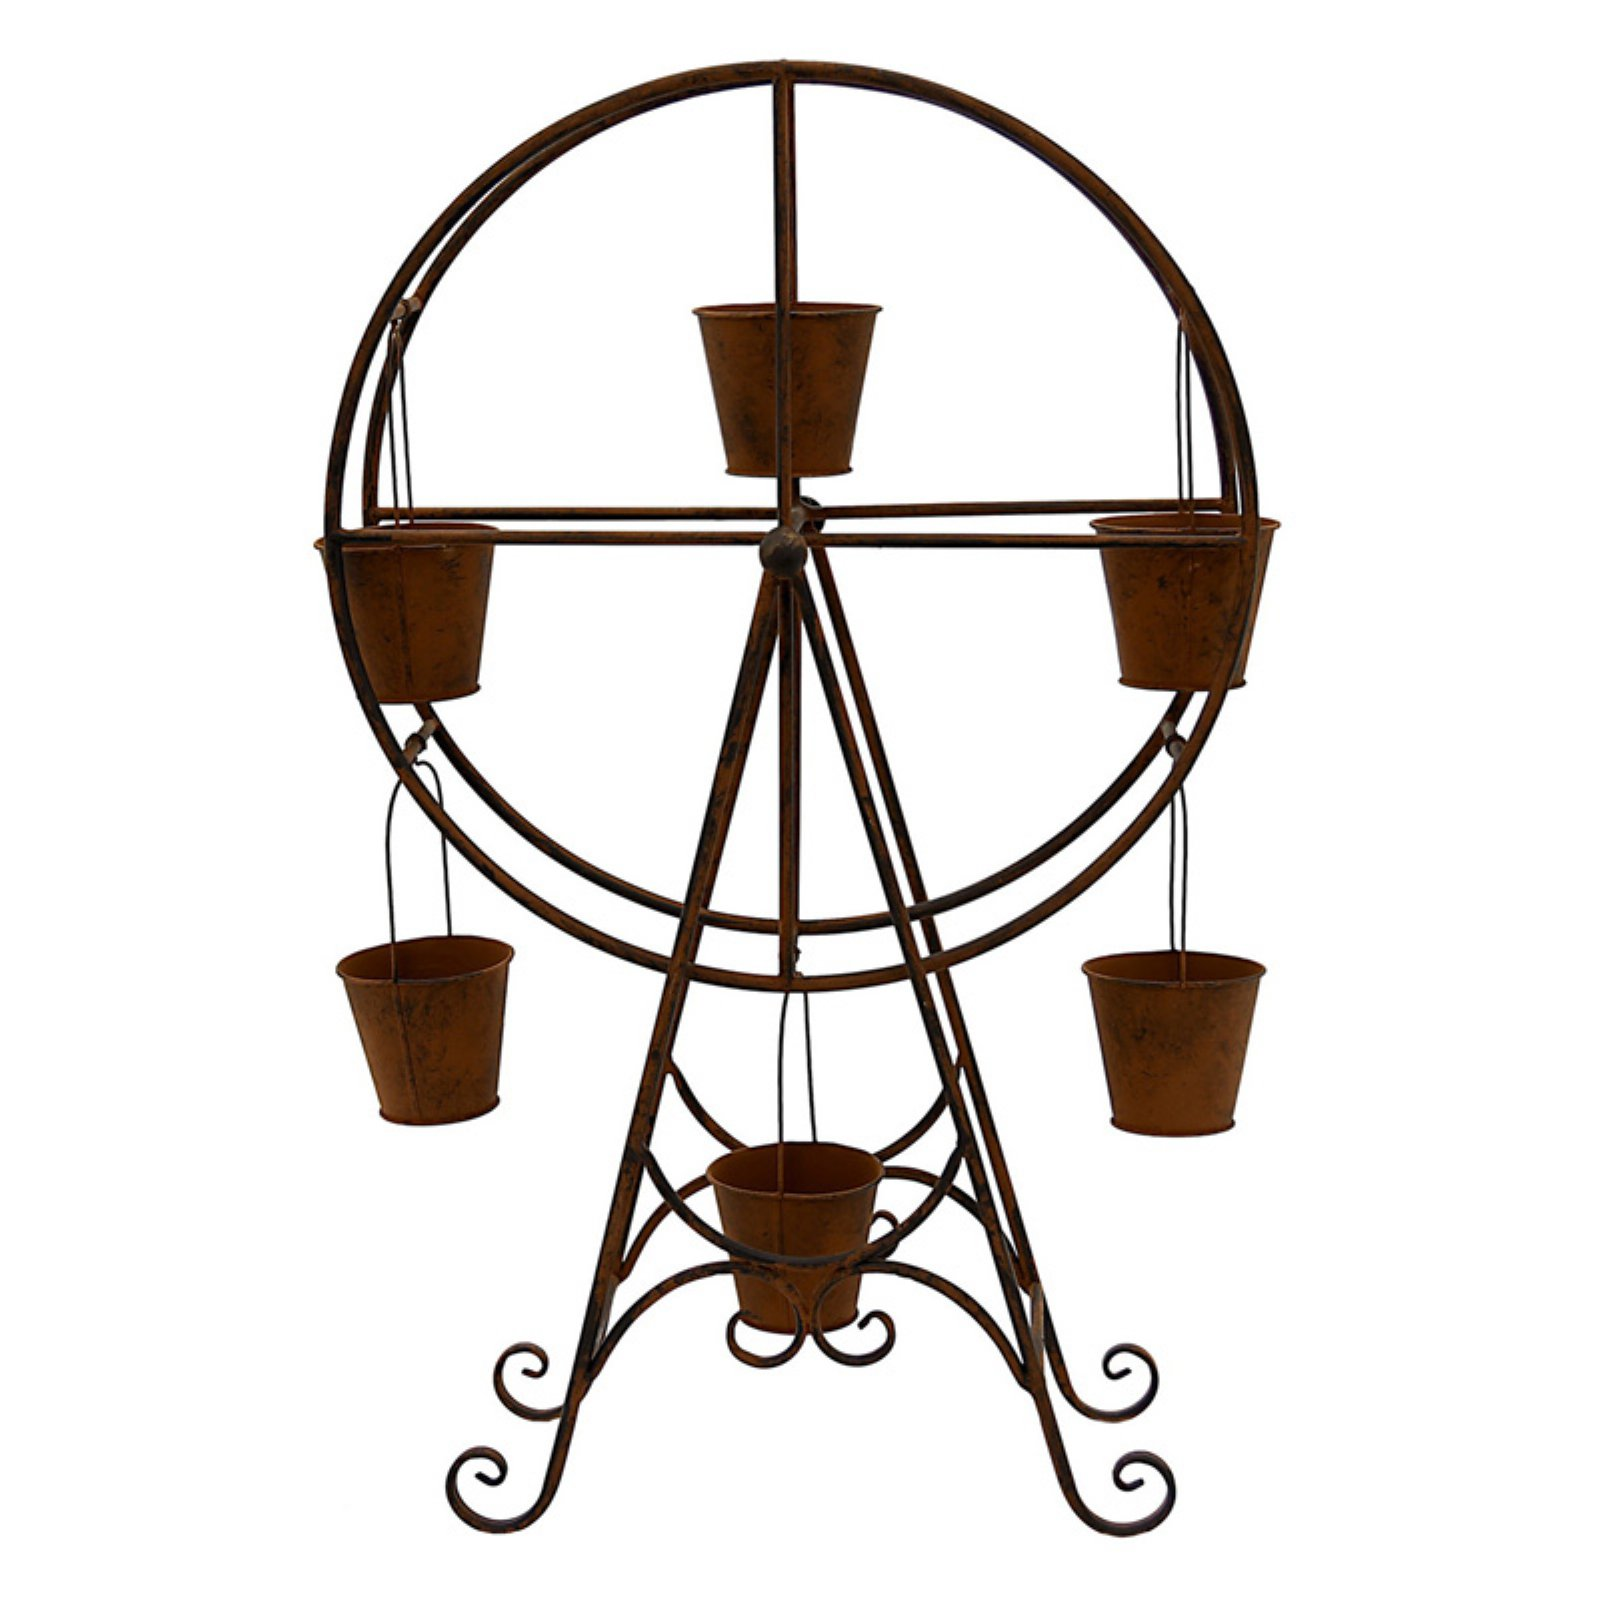 Three Hands Metal Windmill Planter by Overstock